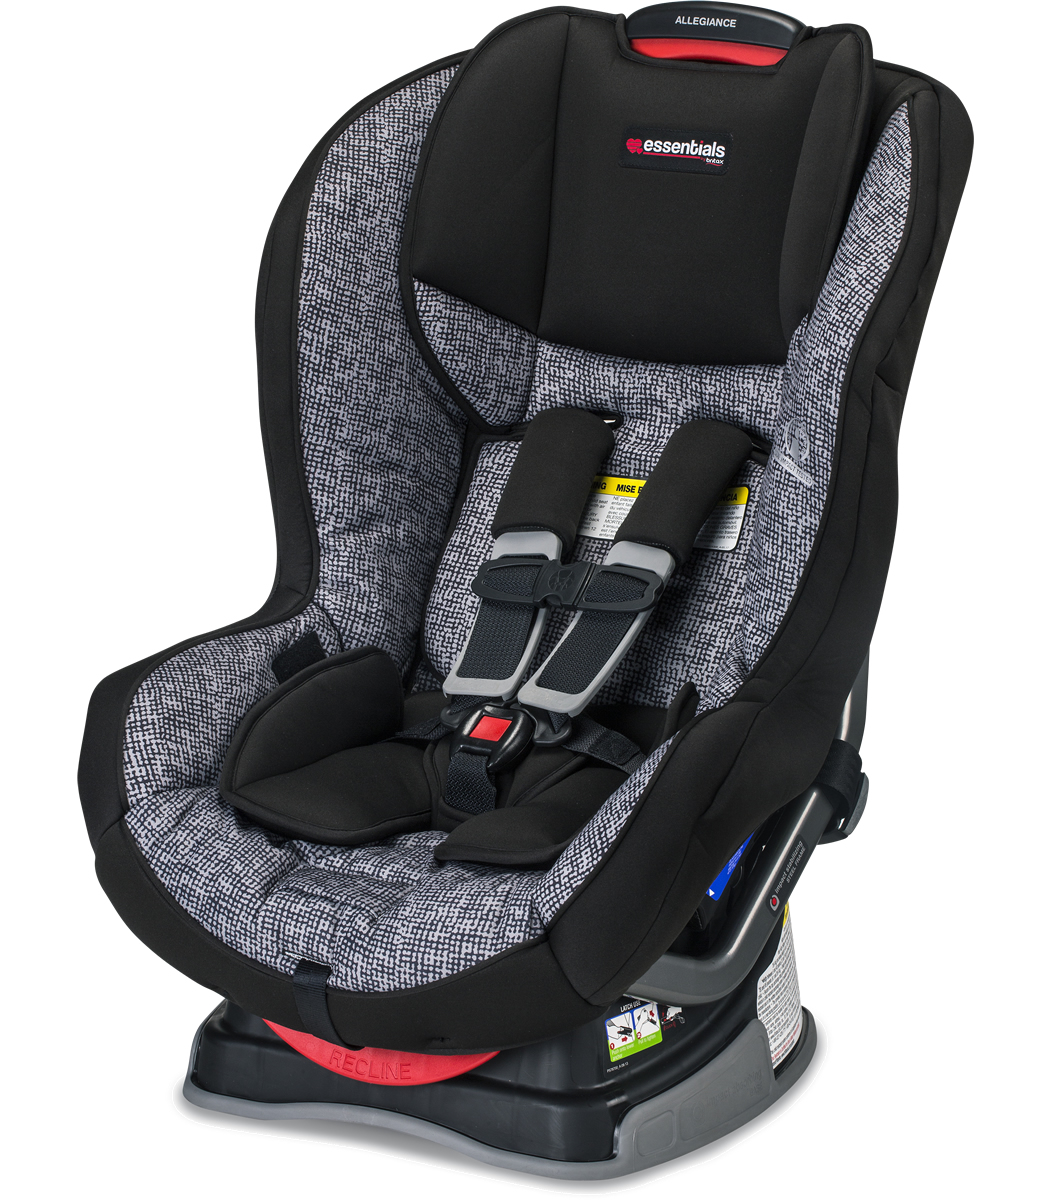 Image result for Britax Allegiance Convertible Car Seats